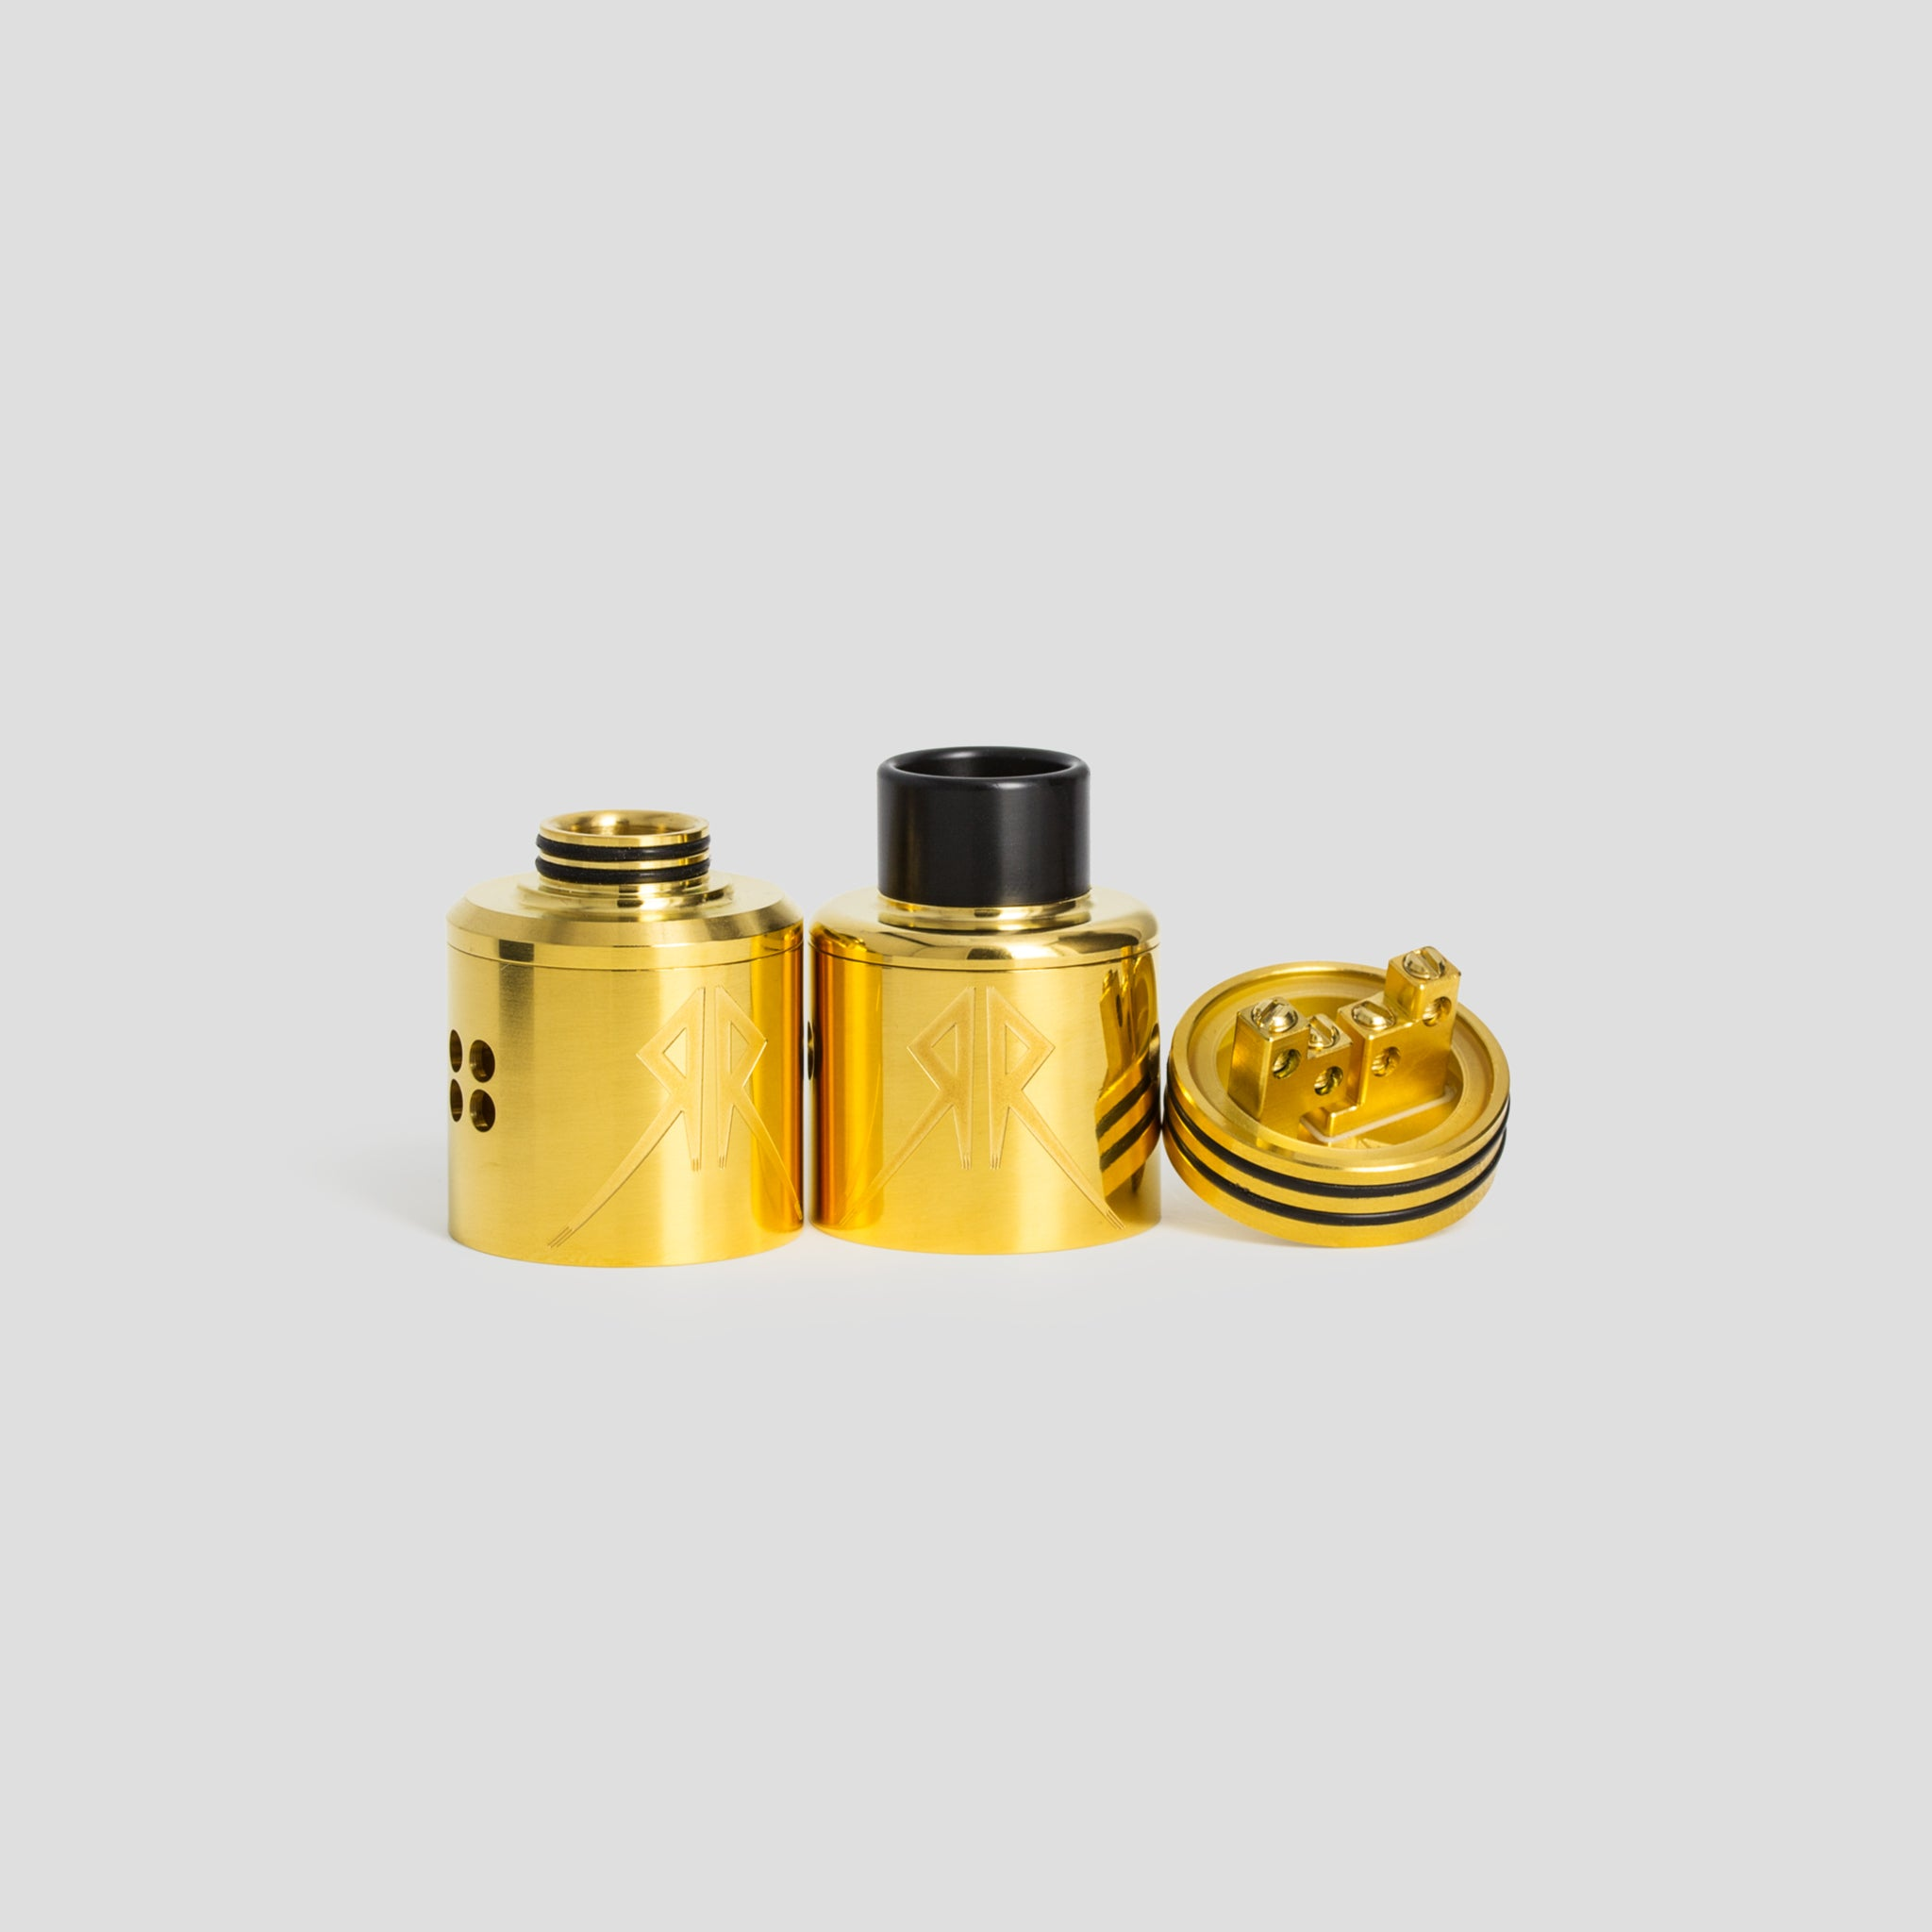 Grimm Green x Ohm Boy Recoil Rebel 25 RDA